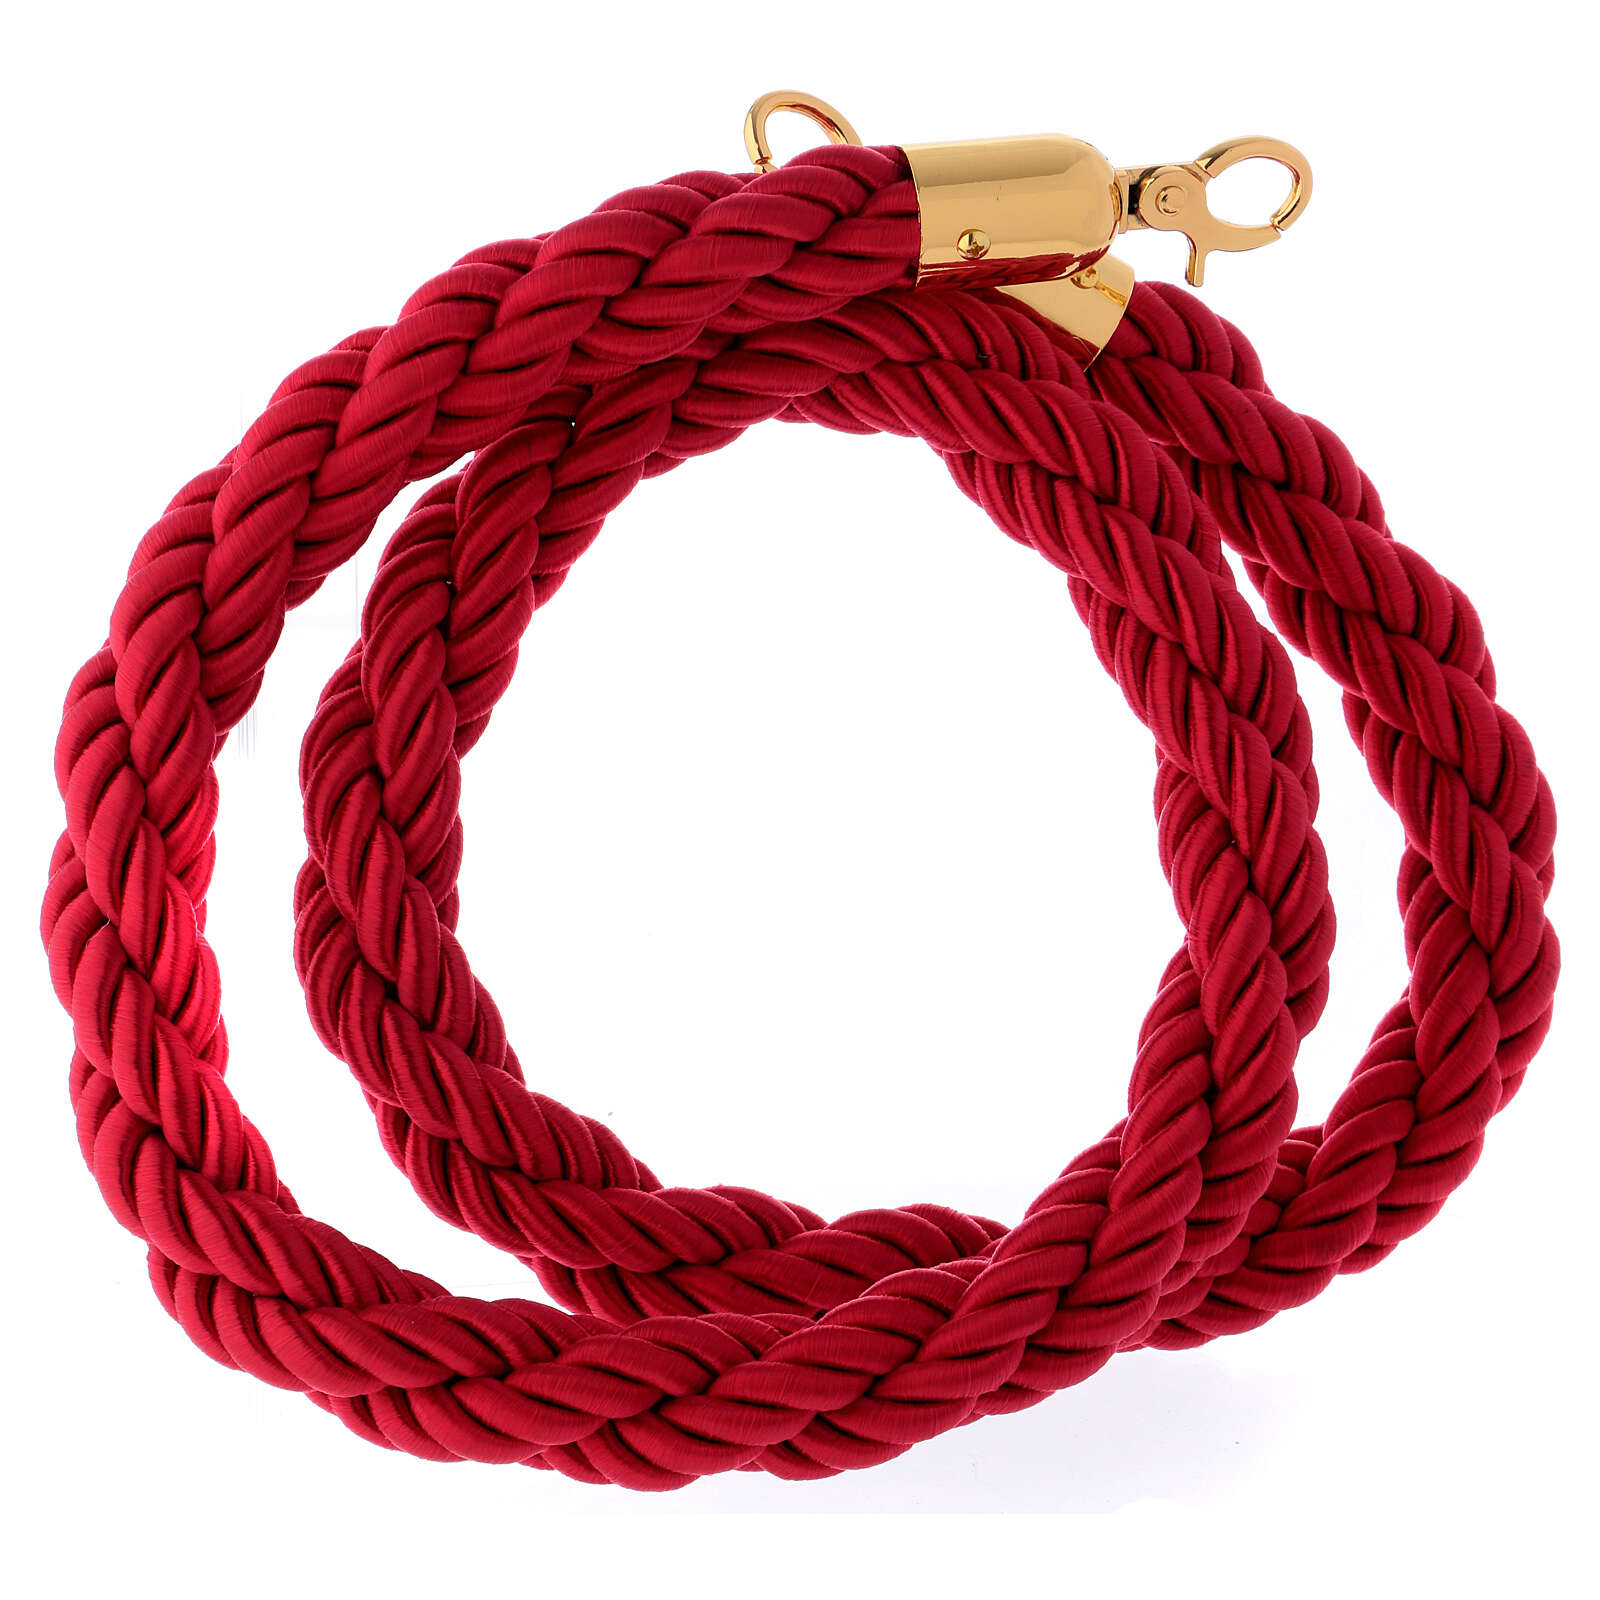 Triple burgundy wreathed rope with hooks 60 in for AV000102 pole 3